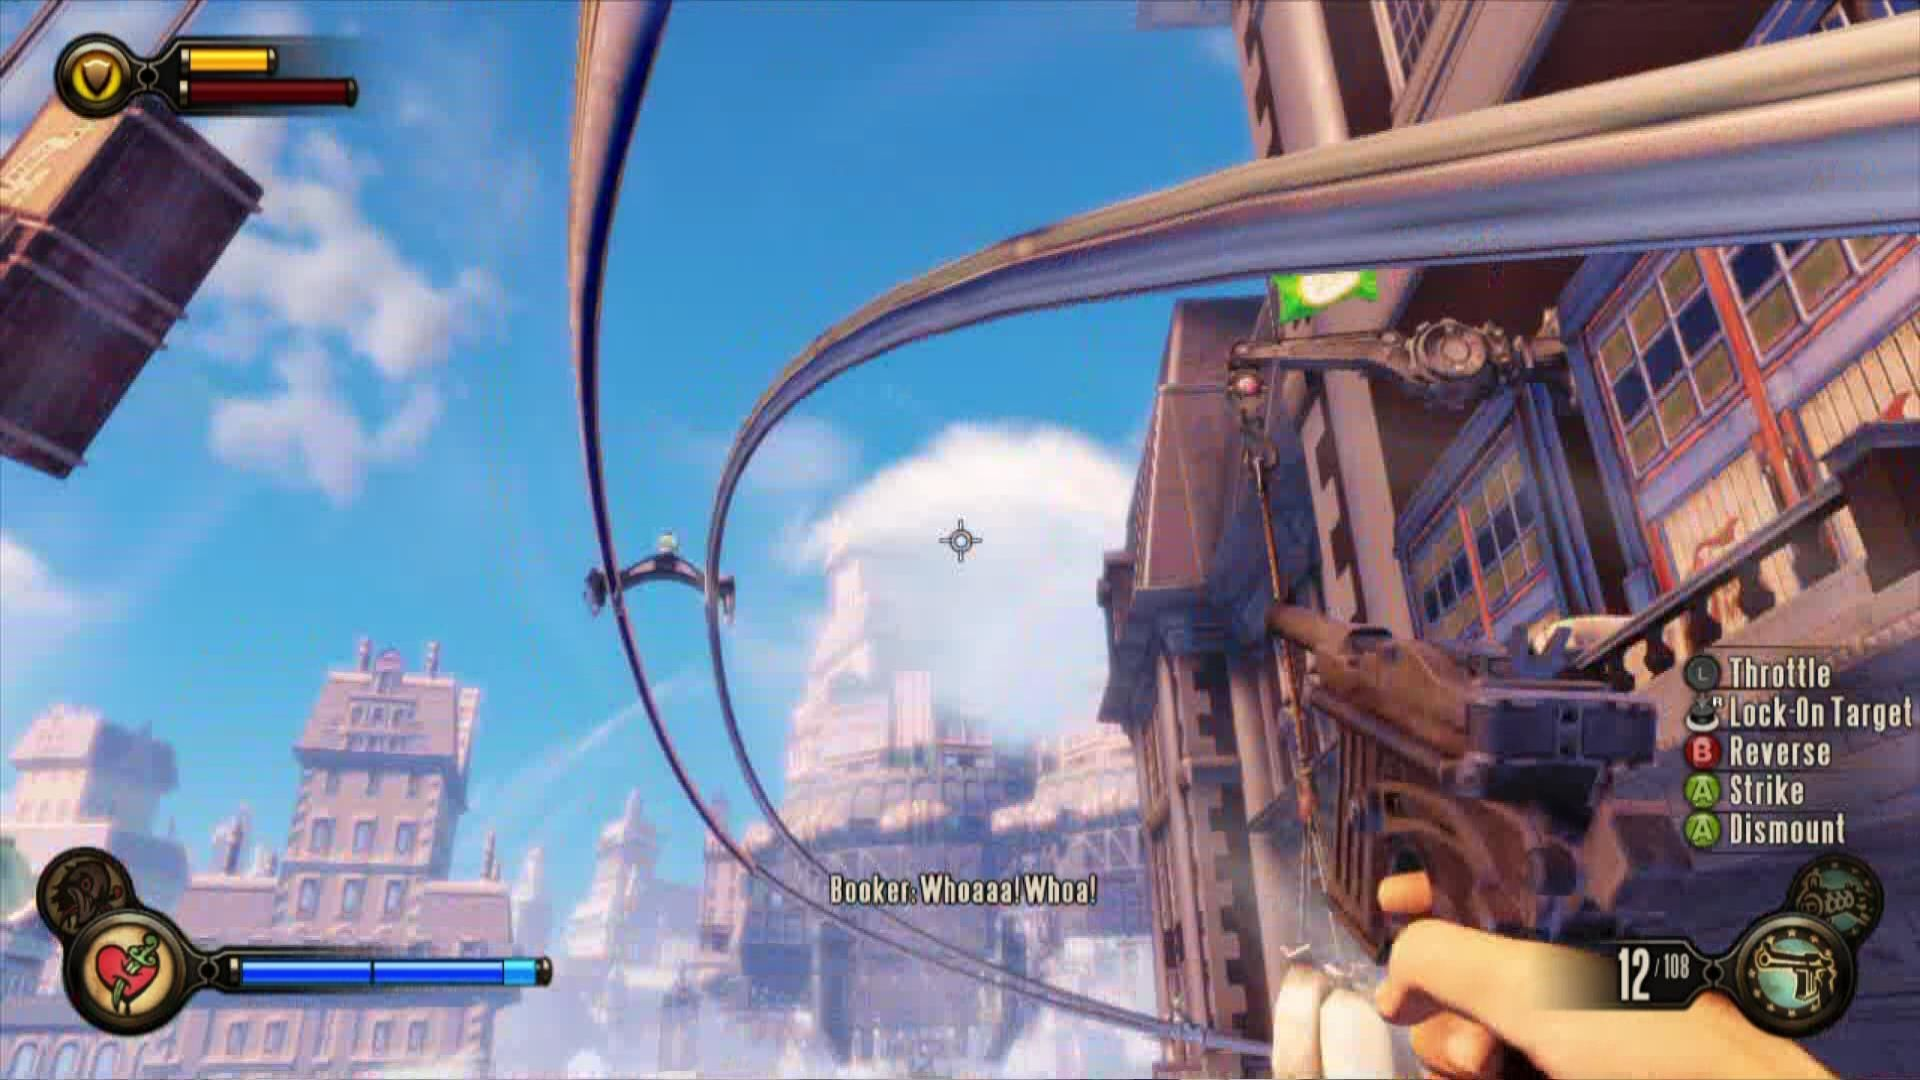 BioShock Infinite Xbox 360 Use the Sky-Line to travel around.